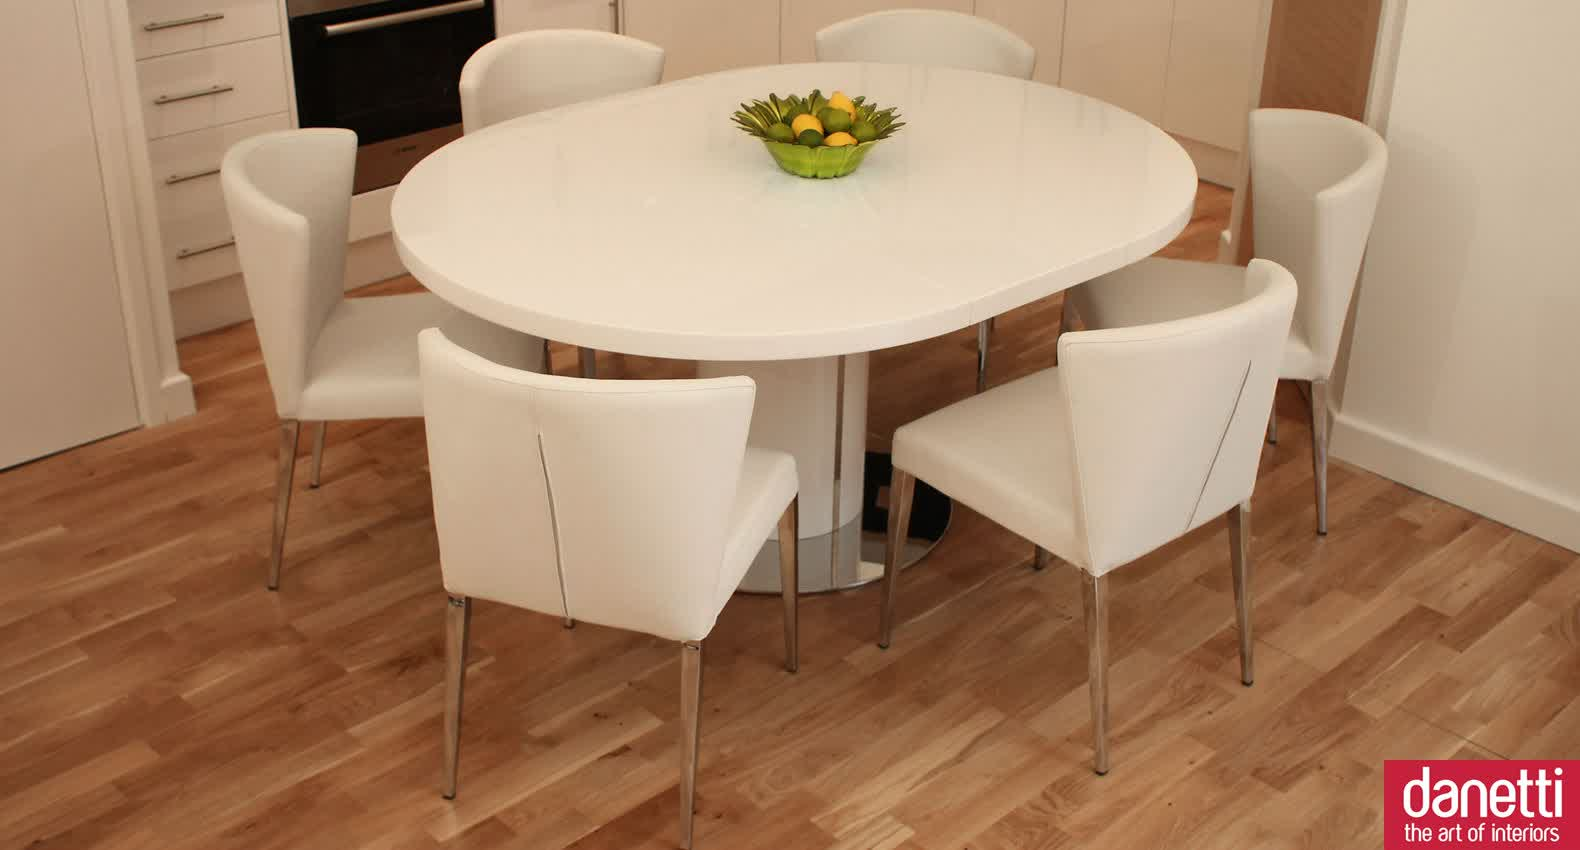 solid white expandable dining table set with round table on wooden floor for dining room ideas